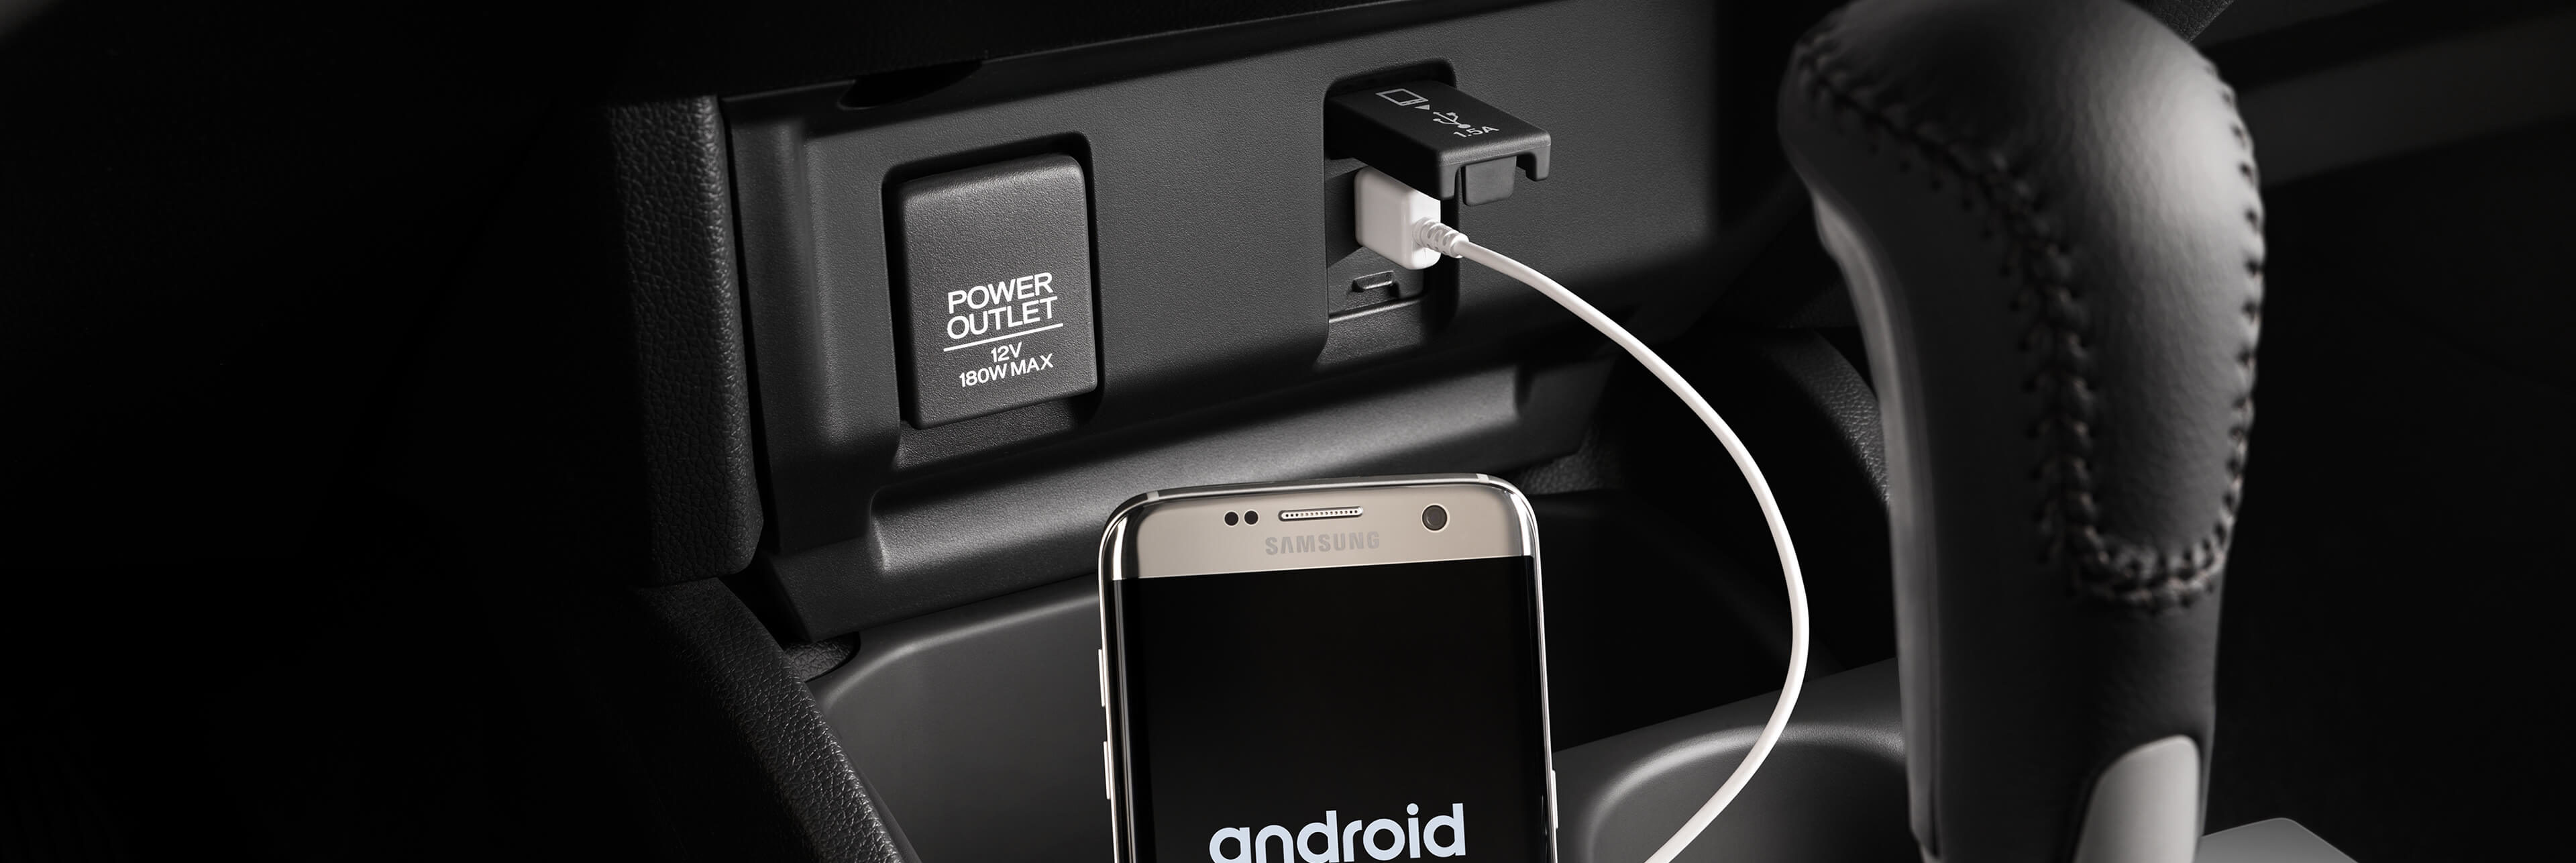 Honda Fit Interior, an Android Phone charging inside the vehicle